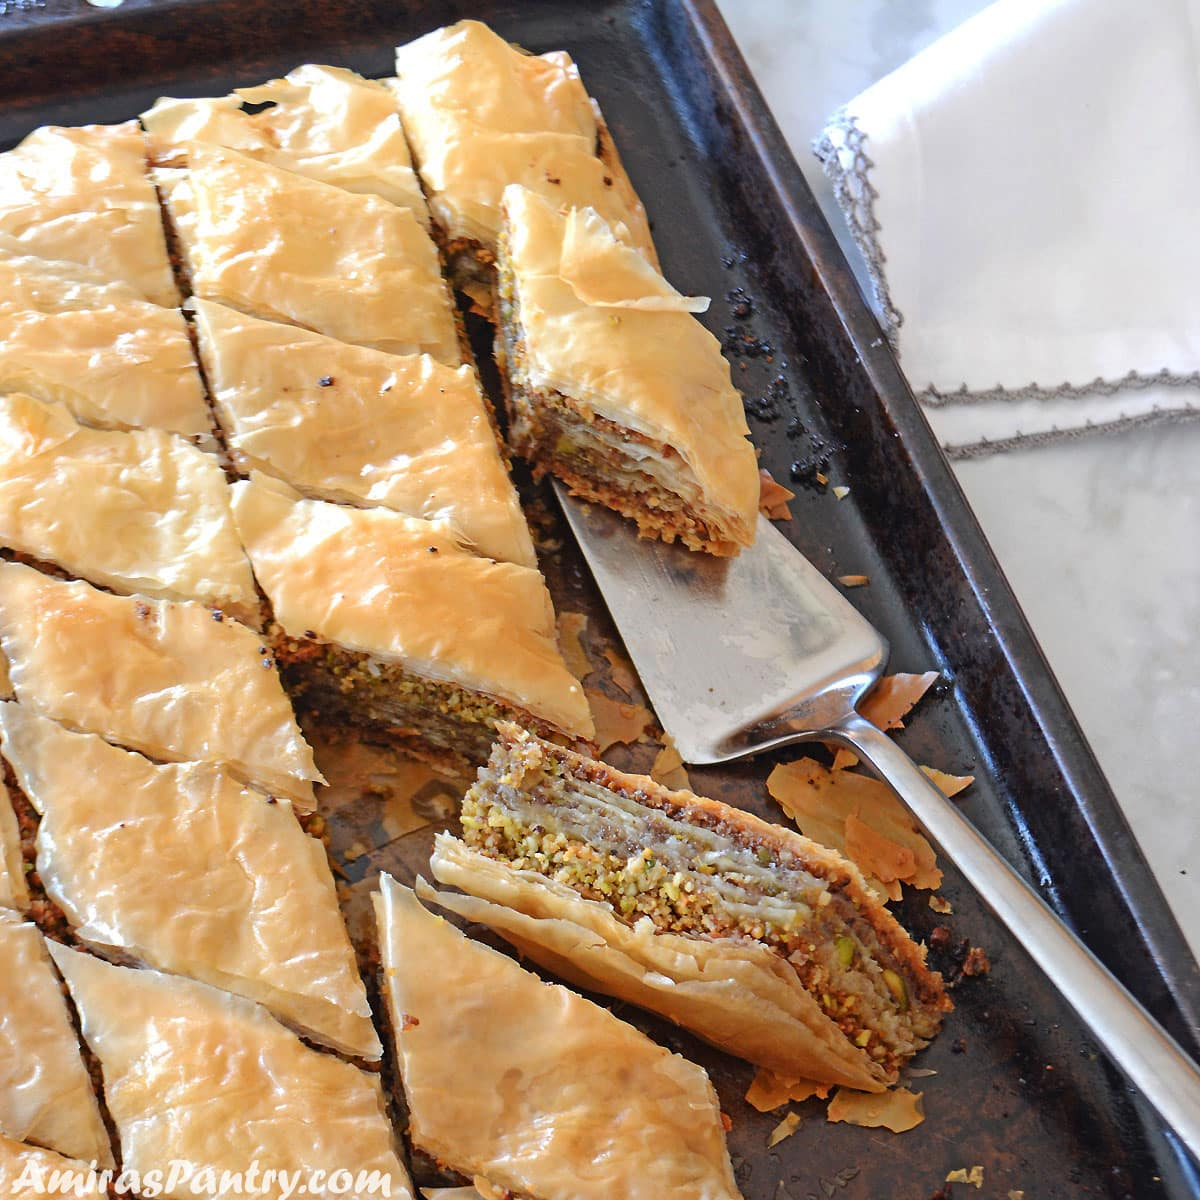 A dark baking sheet with baklava squares and one turned on its side to show the layers.